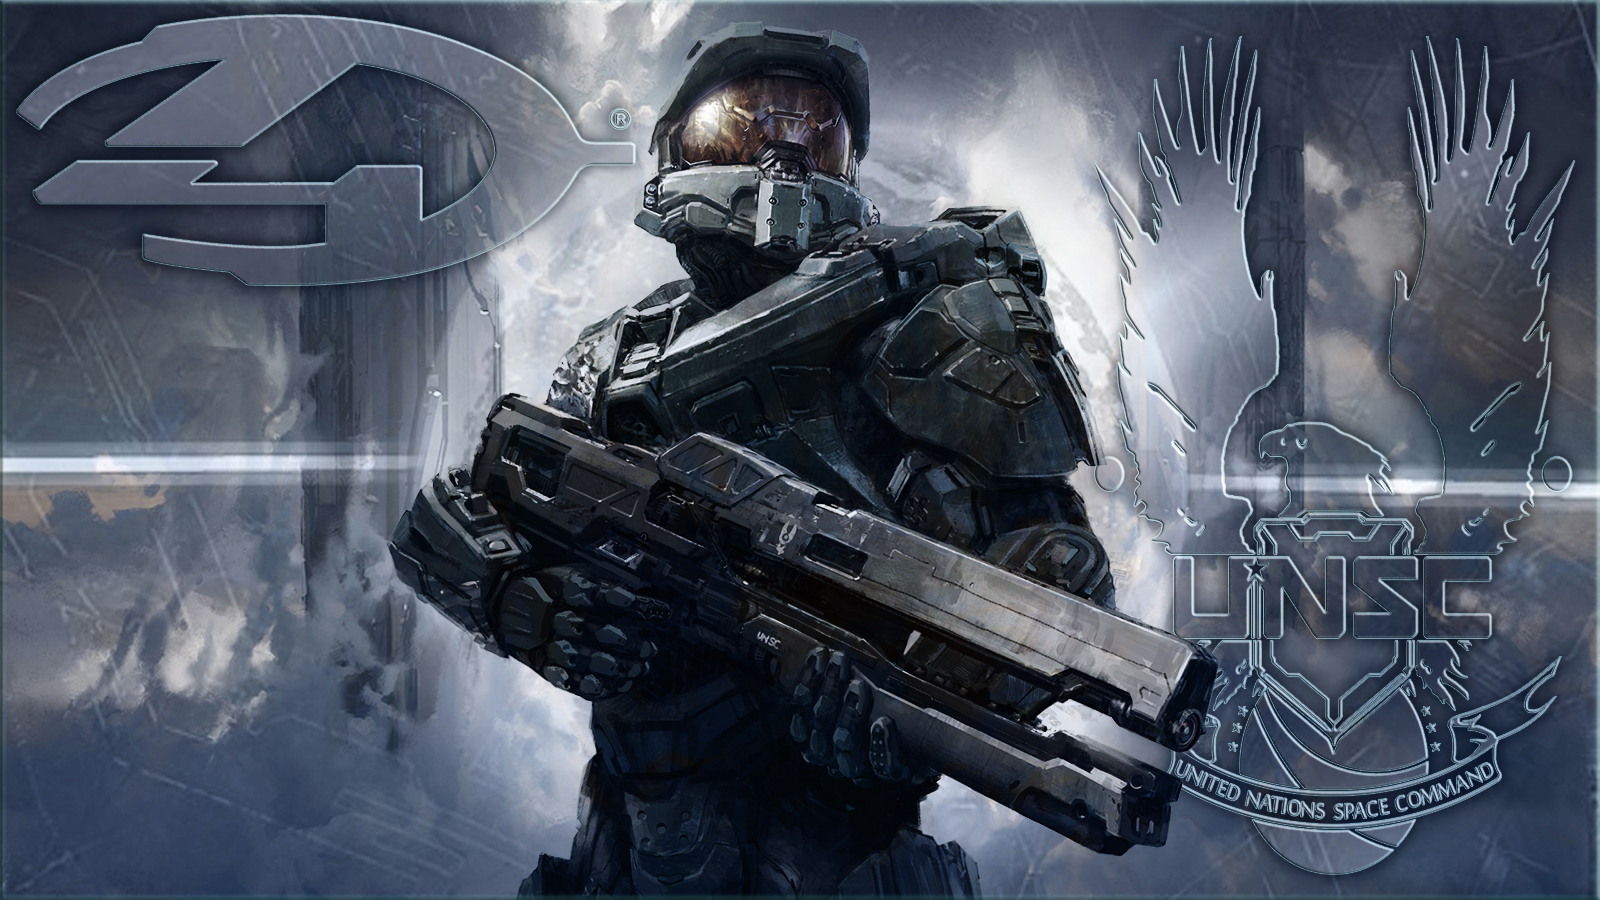 Halo 4 Spartan Ops Returns In January 2013